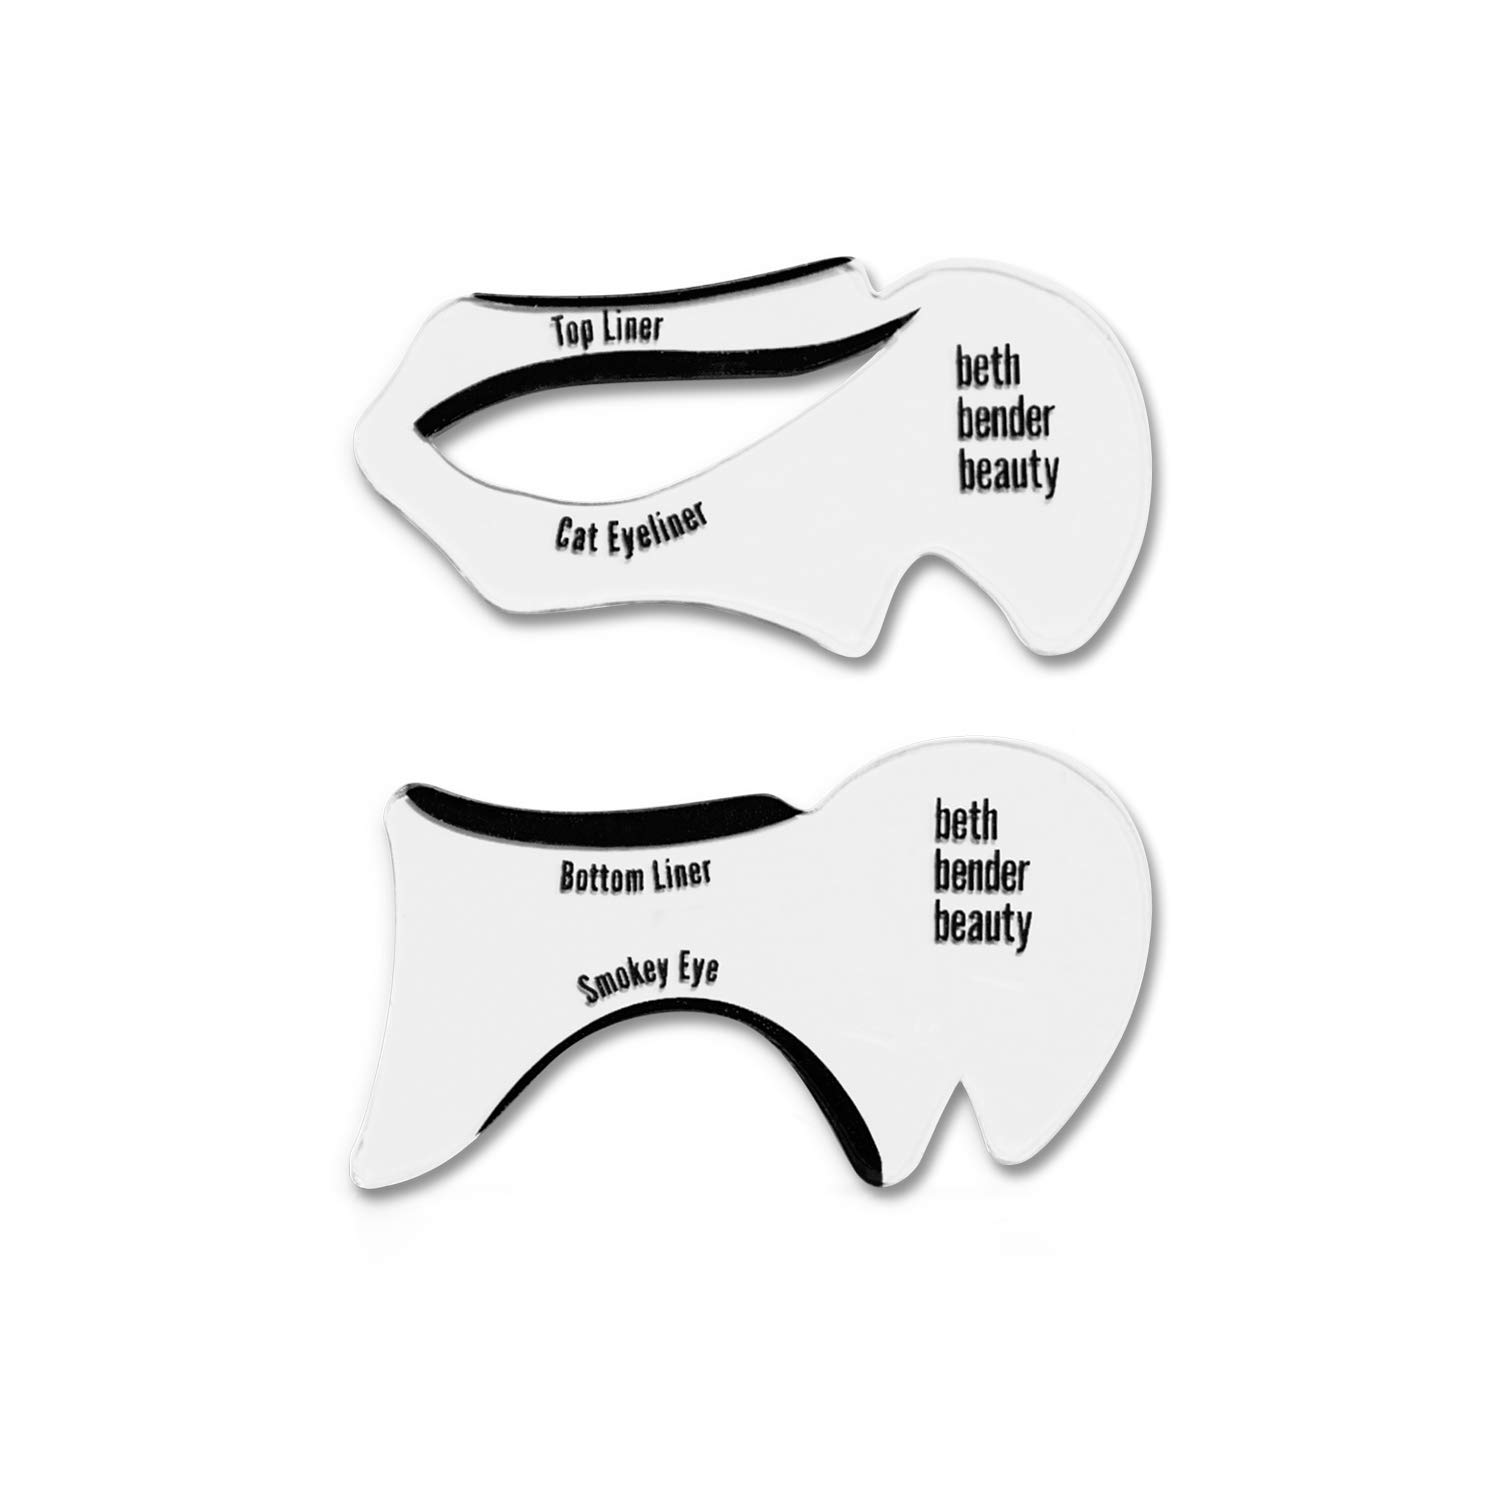 Eyeliner Stencil - For Perfect Smokey Eyes or Winged Tip Look. Created by Celebrity Makeup Artist. Reusable, Easy to Clean & Flexible. Cruelty Free & Vegan, Made in USA (Cat Eyeliner + Smoky Eyeliner)